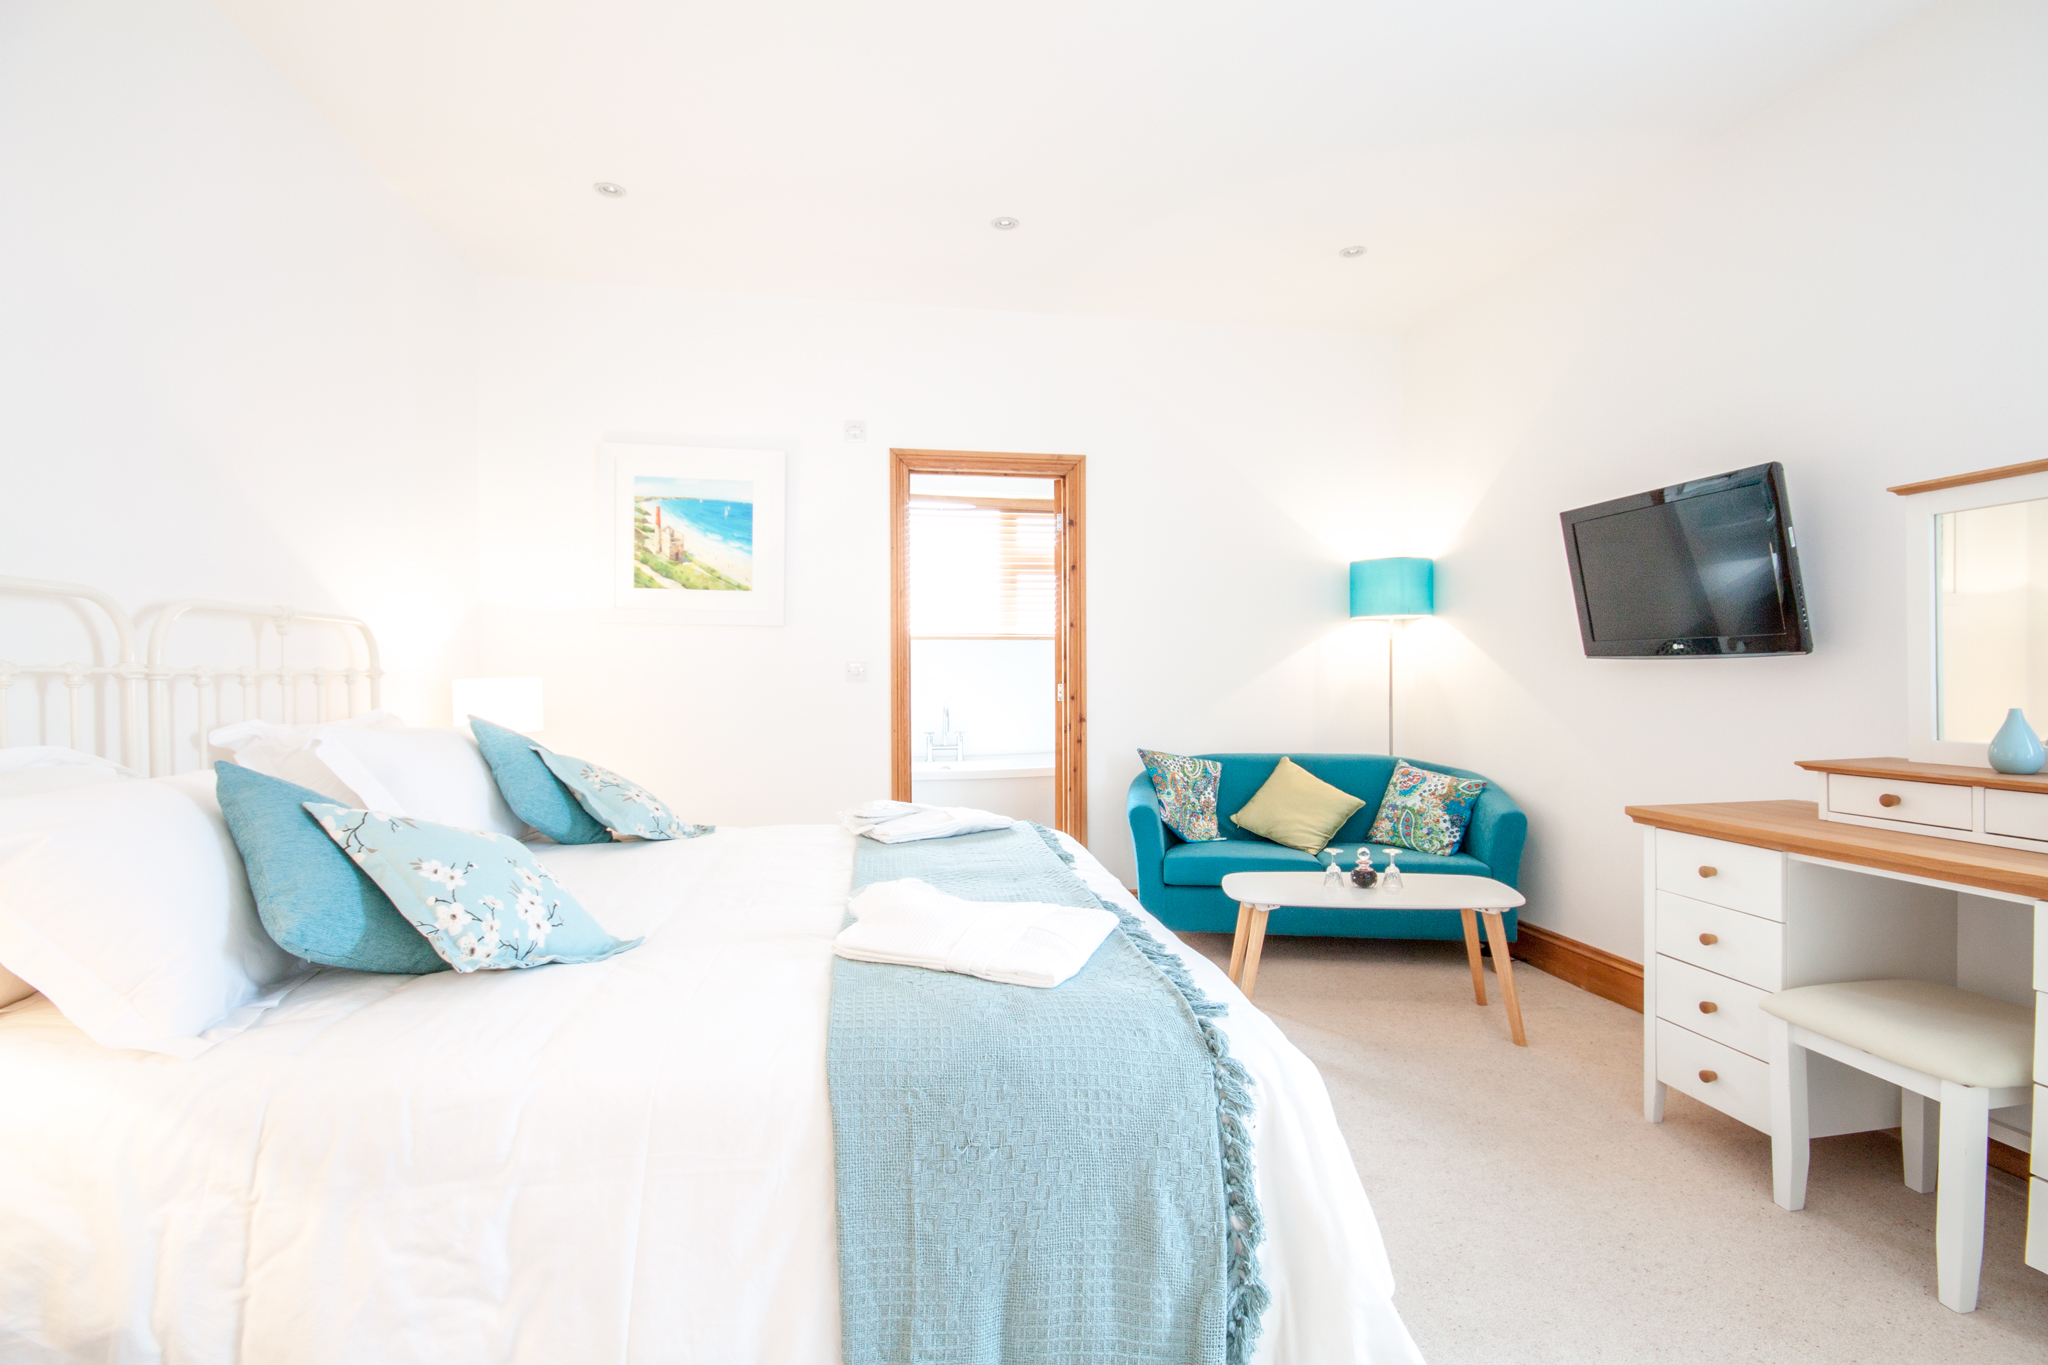 Padstow Bed & Breakfast - Padstow, Cornwall PL28 8EX - 01841 533314 | ShowMeLocal.com